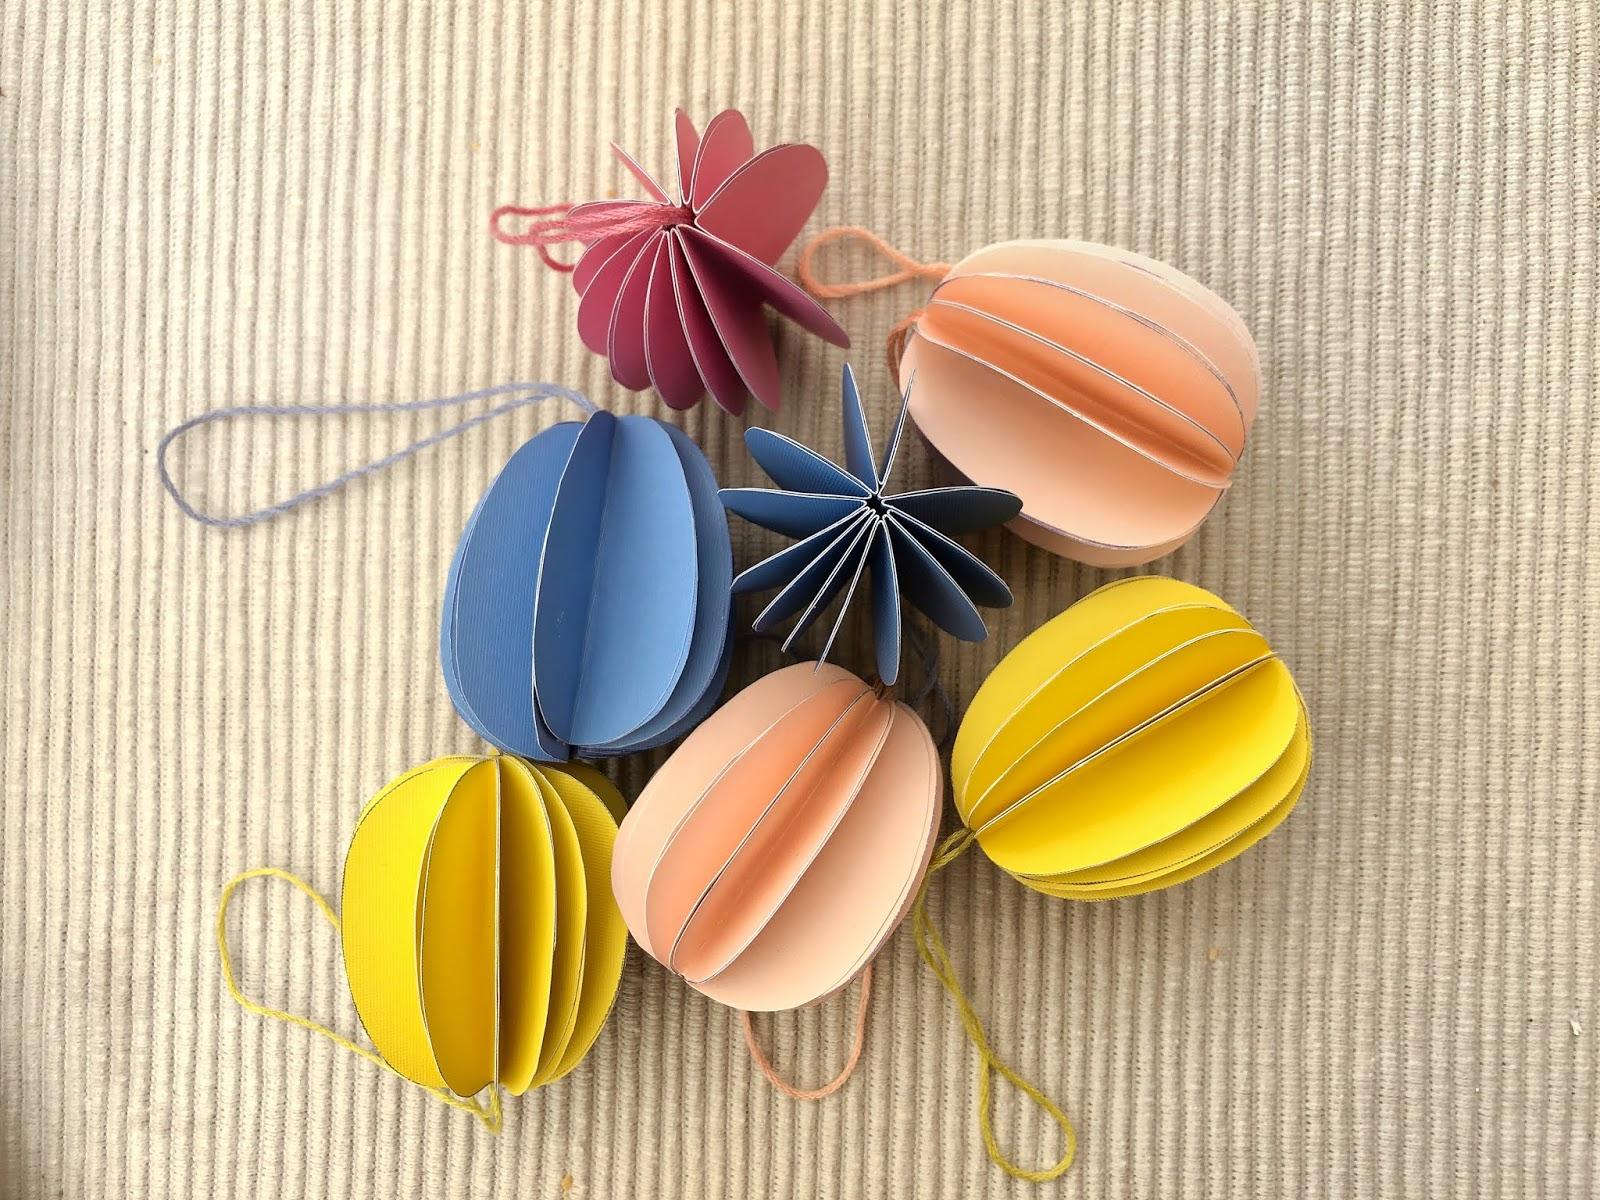 How to make Easter paper decorations in the shape of an Easter egg, perfect for decorating your home for spring, or for creating a pretty seasonal table setting. DIY tutorial craft perfect for when you're stuck inside at home on lockdown. Complete with printable template.